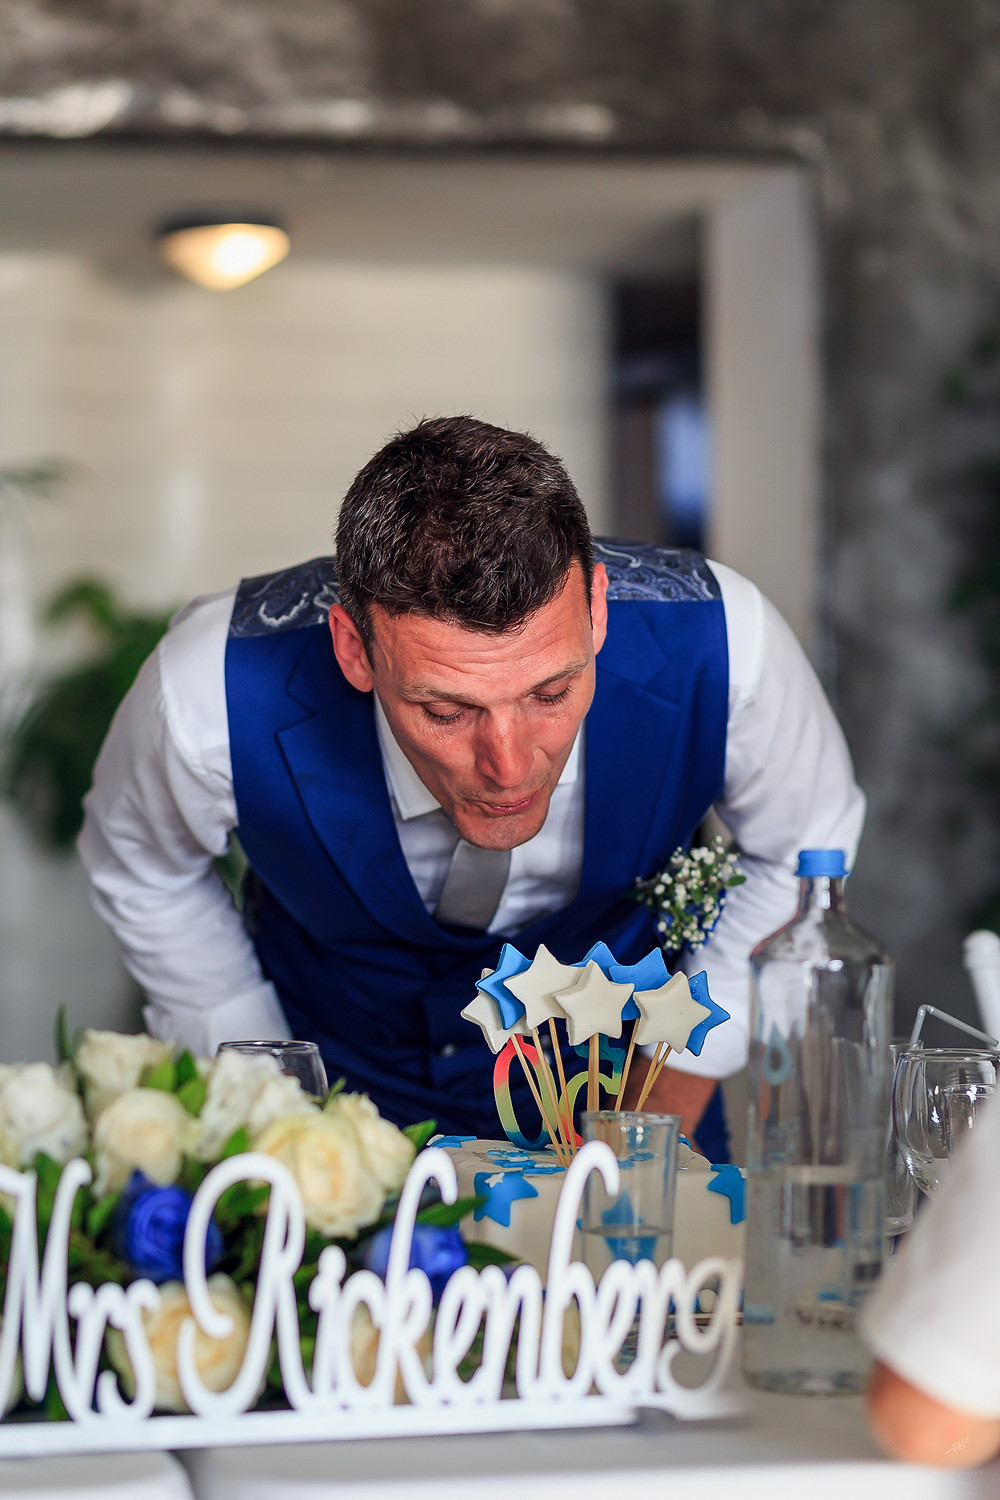 Groom blowing out candles